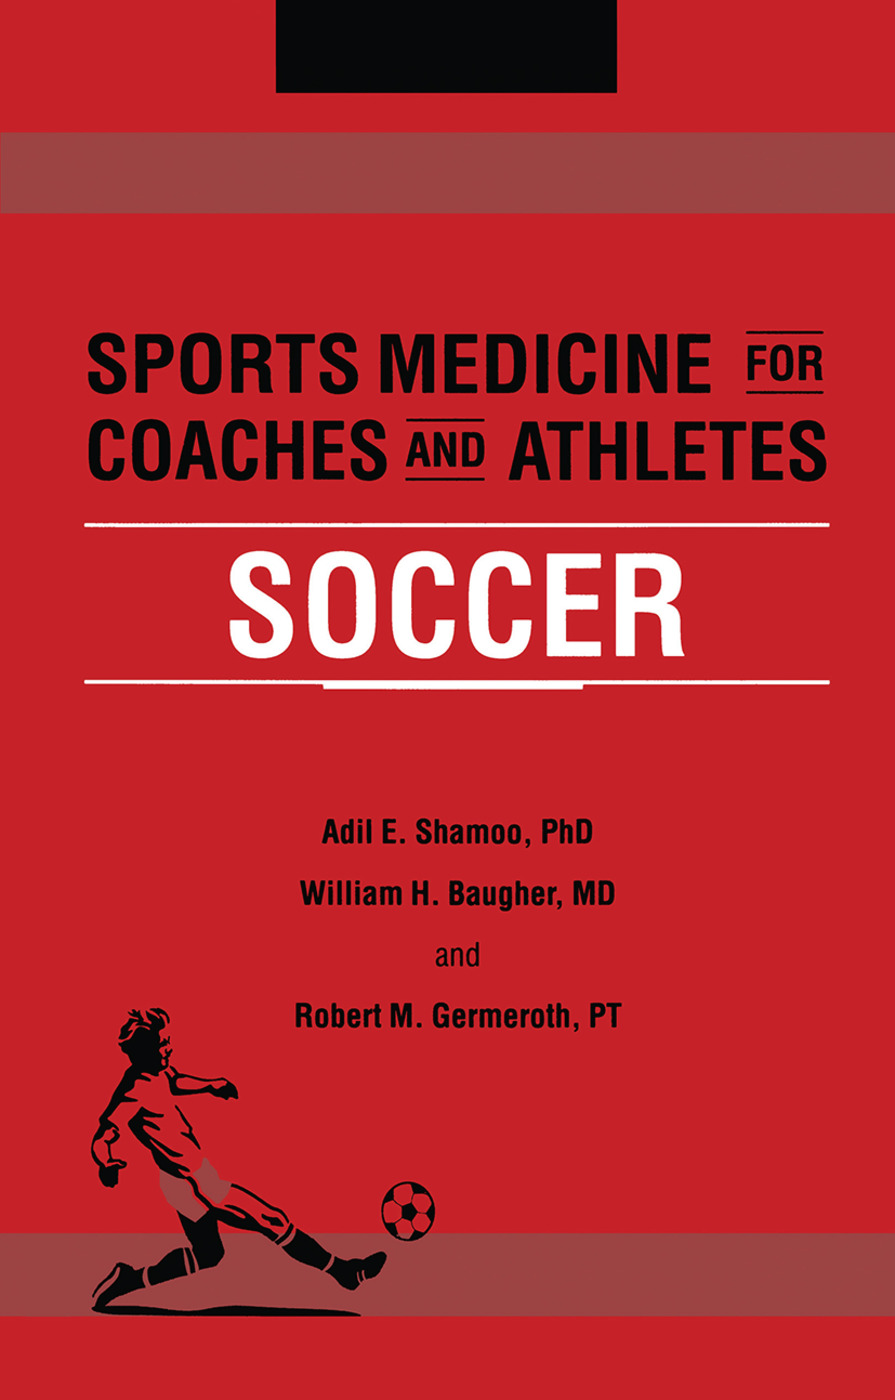 Sports Medicine for Coaches and Athletes: Soccer book cover